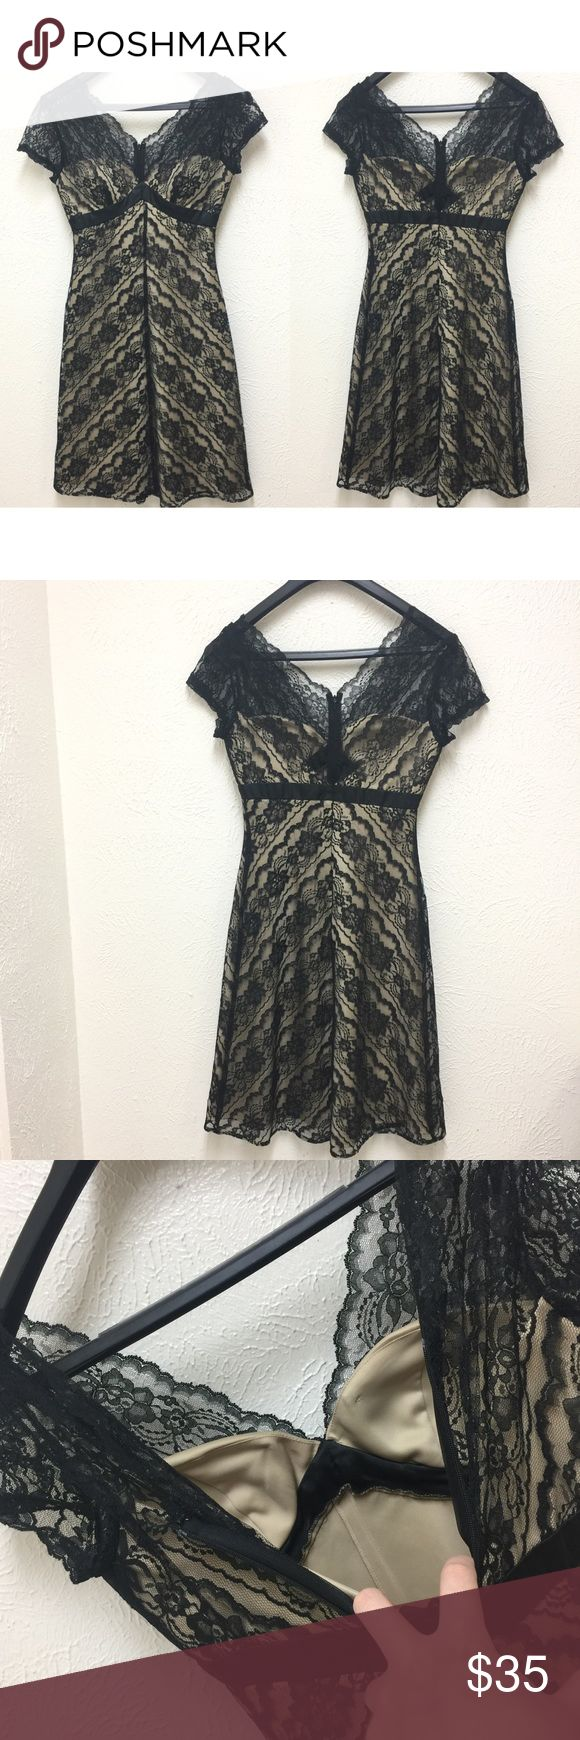 White House Black Market Black Beige Lace Dress 2 See pictures for details and condition.  Size 2 ❌NO Trade ❌Lowball Offer Will be IGNORED&BLOCKED.  ⚡️Serious Buyer ONLY⚡️NO DRAMA! ⭐️Same/next day shipping via USPS ⚠I video record all sales from packing to shipping so we are both protected White House Black Market Dresses